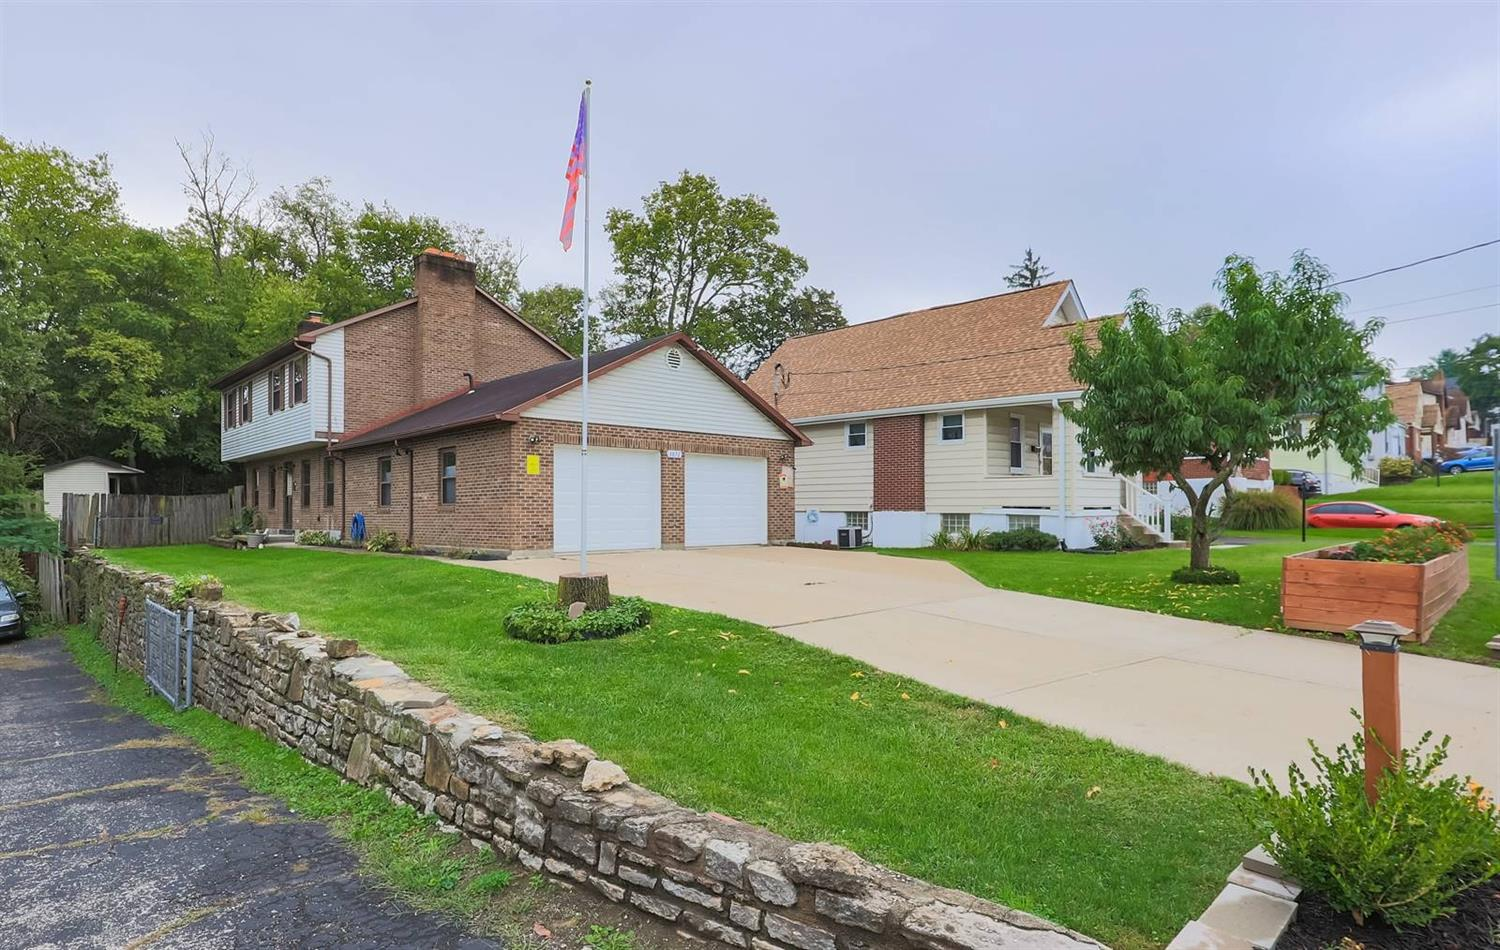 3872 Church Lane, Green Twp, Ohio 45211, 4 Bedrooms Bedrooms, 9 Rooms Rooms,2 BathroomsBathrooms,Single Family Residence,For Sale,Church,1718058